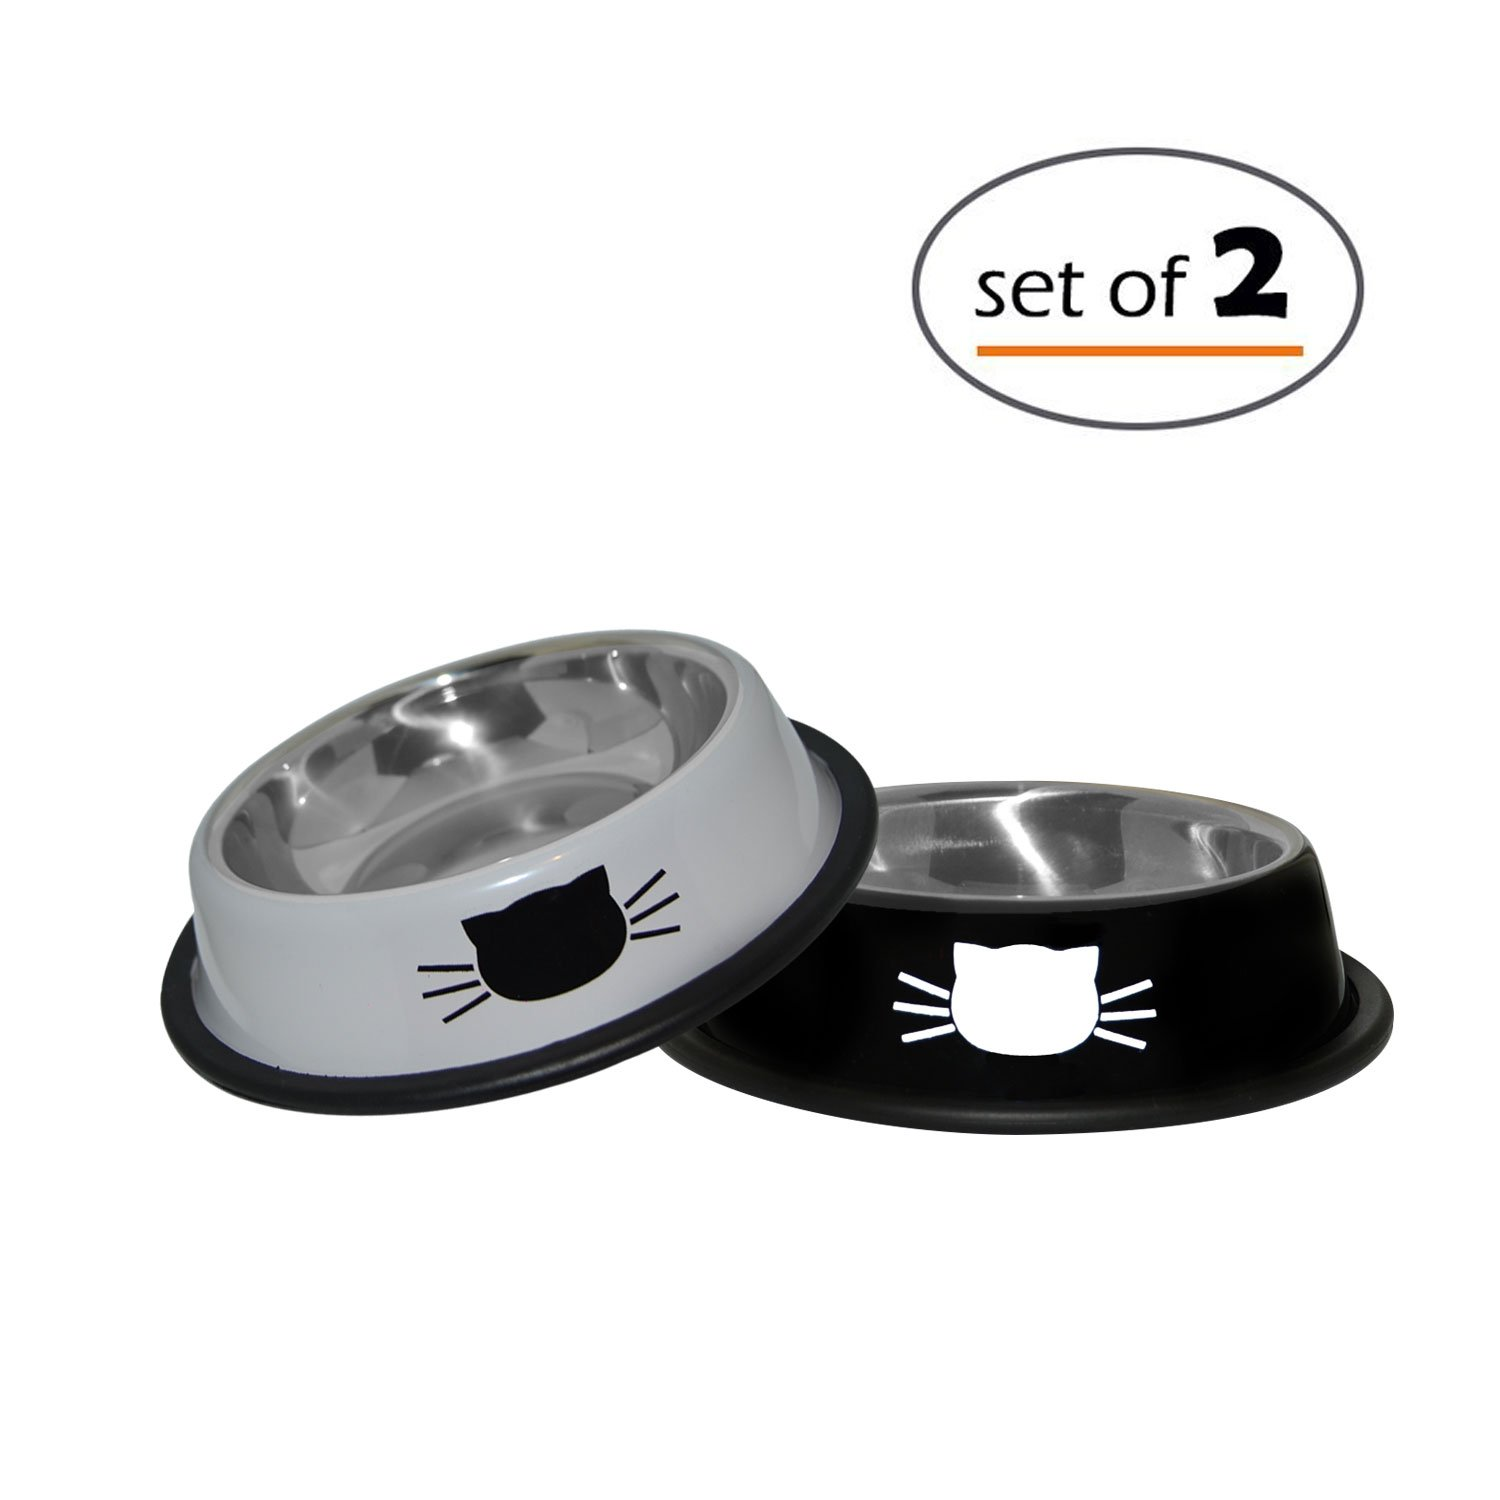 Petfuren Cat Bowls Set By Non-Skid Stainless Steel Cat Dish 8 Ounce with Black/Gray Color and Cute Cat Face for Pet Food & Water Bowl (Set of 2)